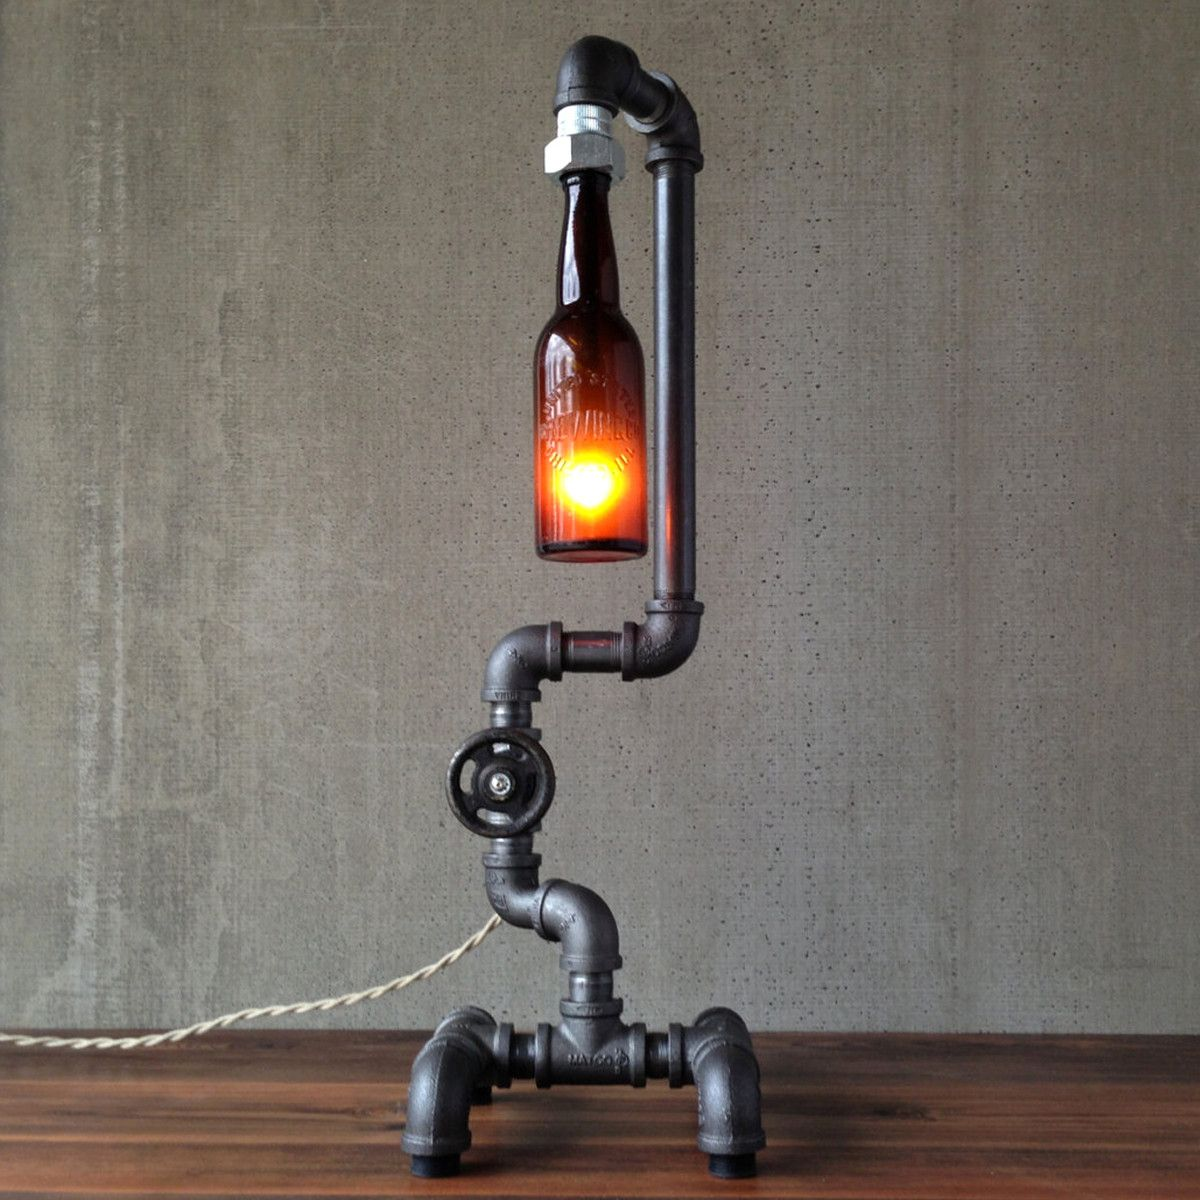 Recyclage Objet Détourné Table Lamps Made From Vintage Bottles And Iron Pipes